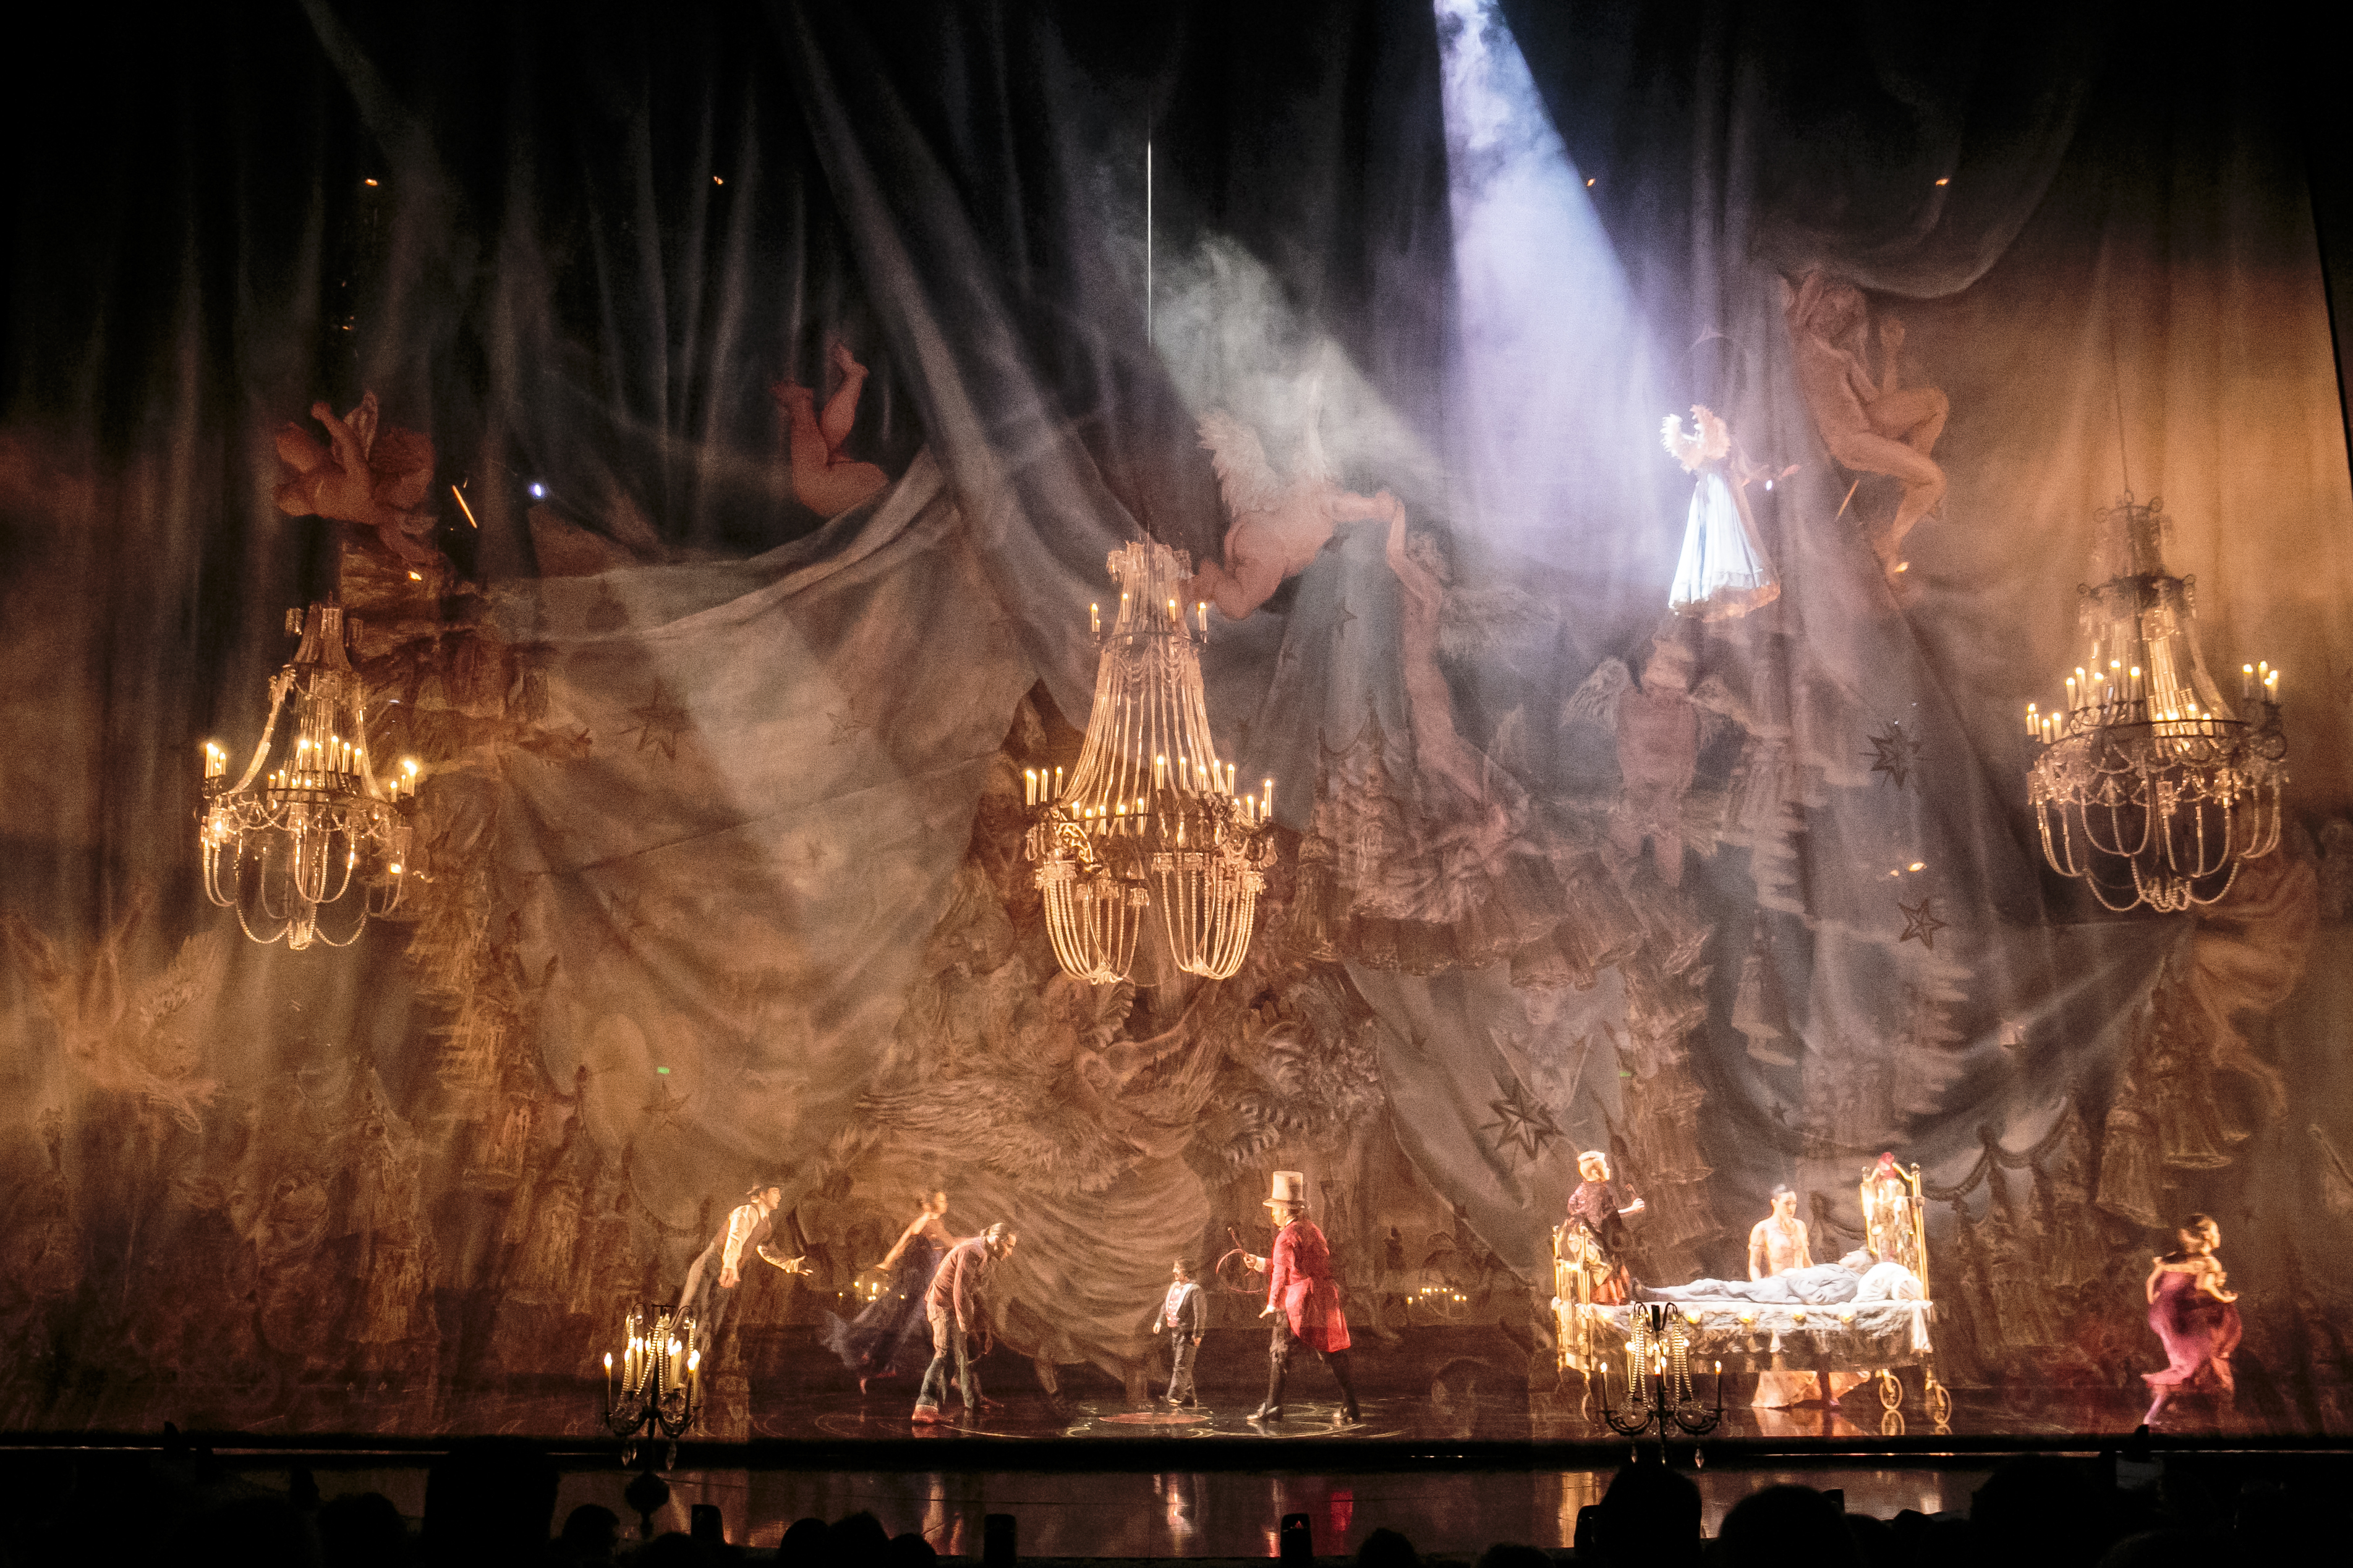 The opening of Corteo. Photo courtesy of Cirque du Soleil, as is the one at the top of the page.